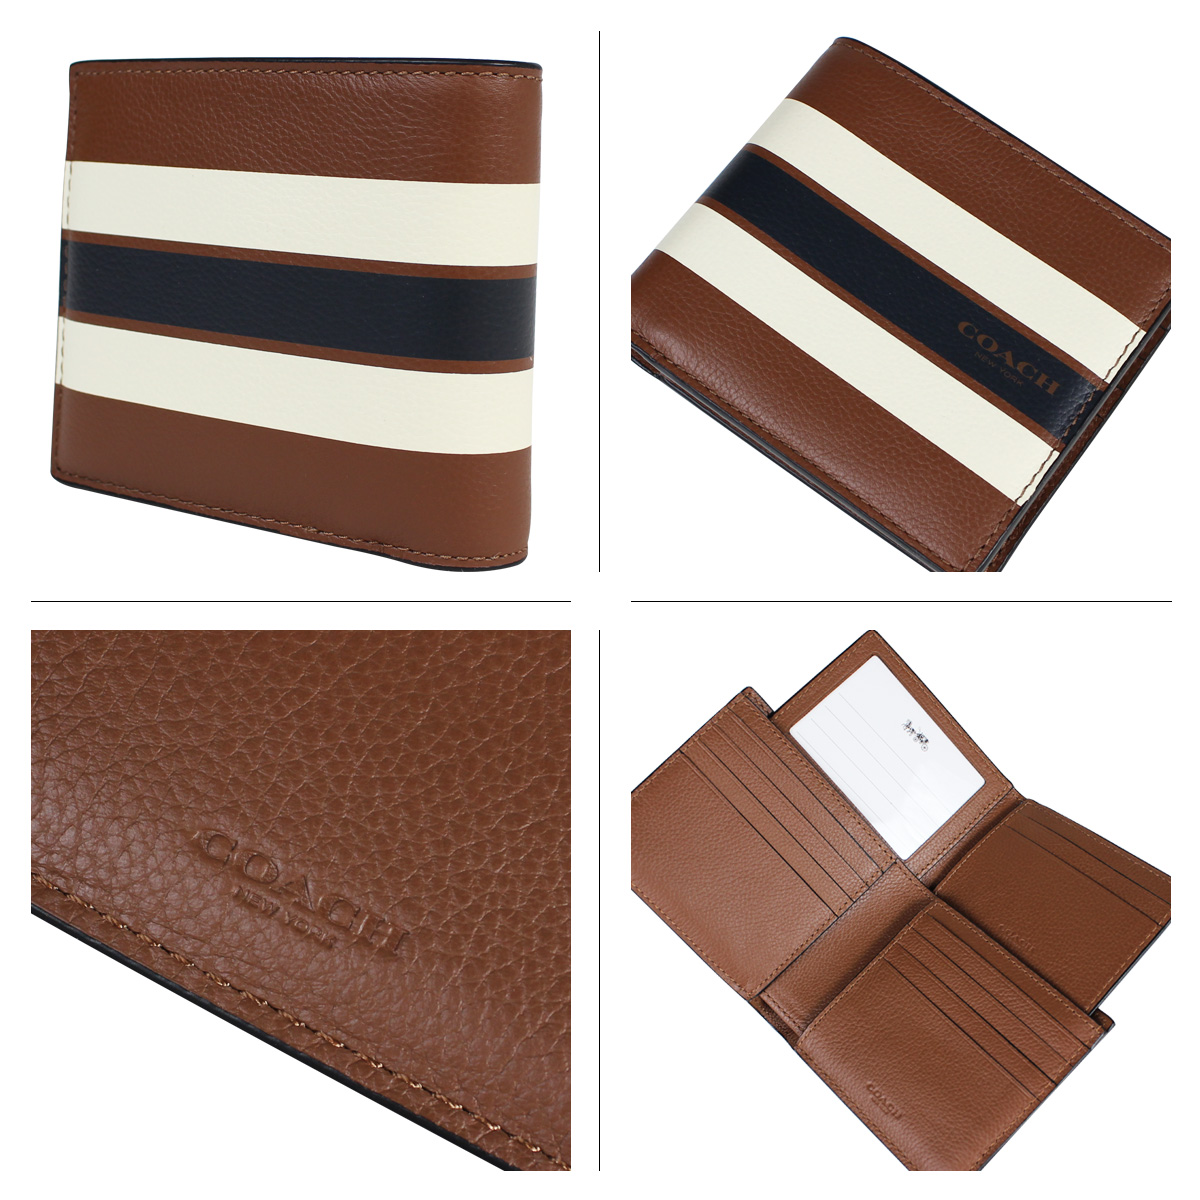 b7915e0c95e2d COACH coach mens wallet two bi-fold wallet ID case F75399 dark saddle  8 23  new in stock